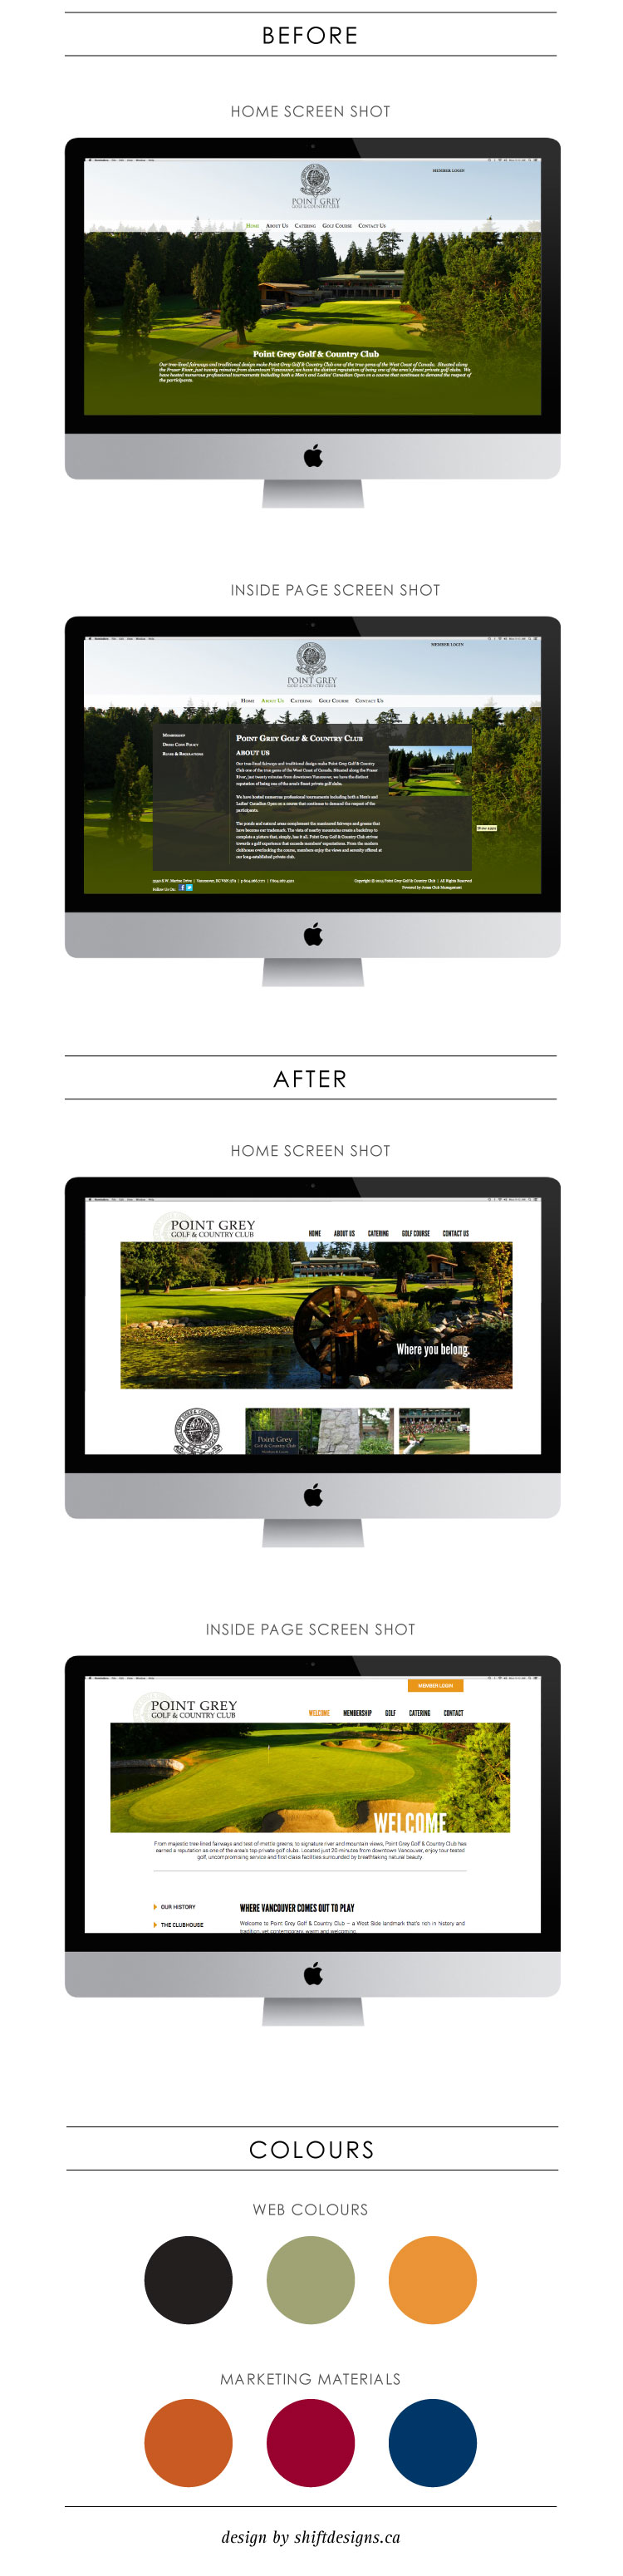 PGG-website-before-after